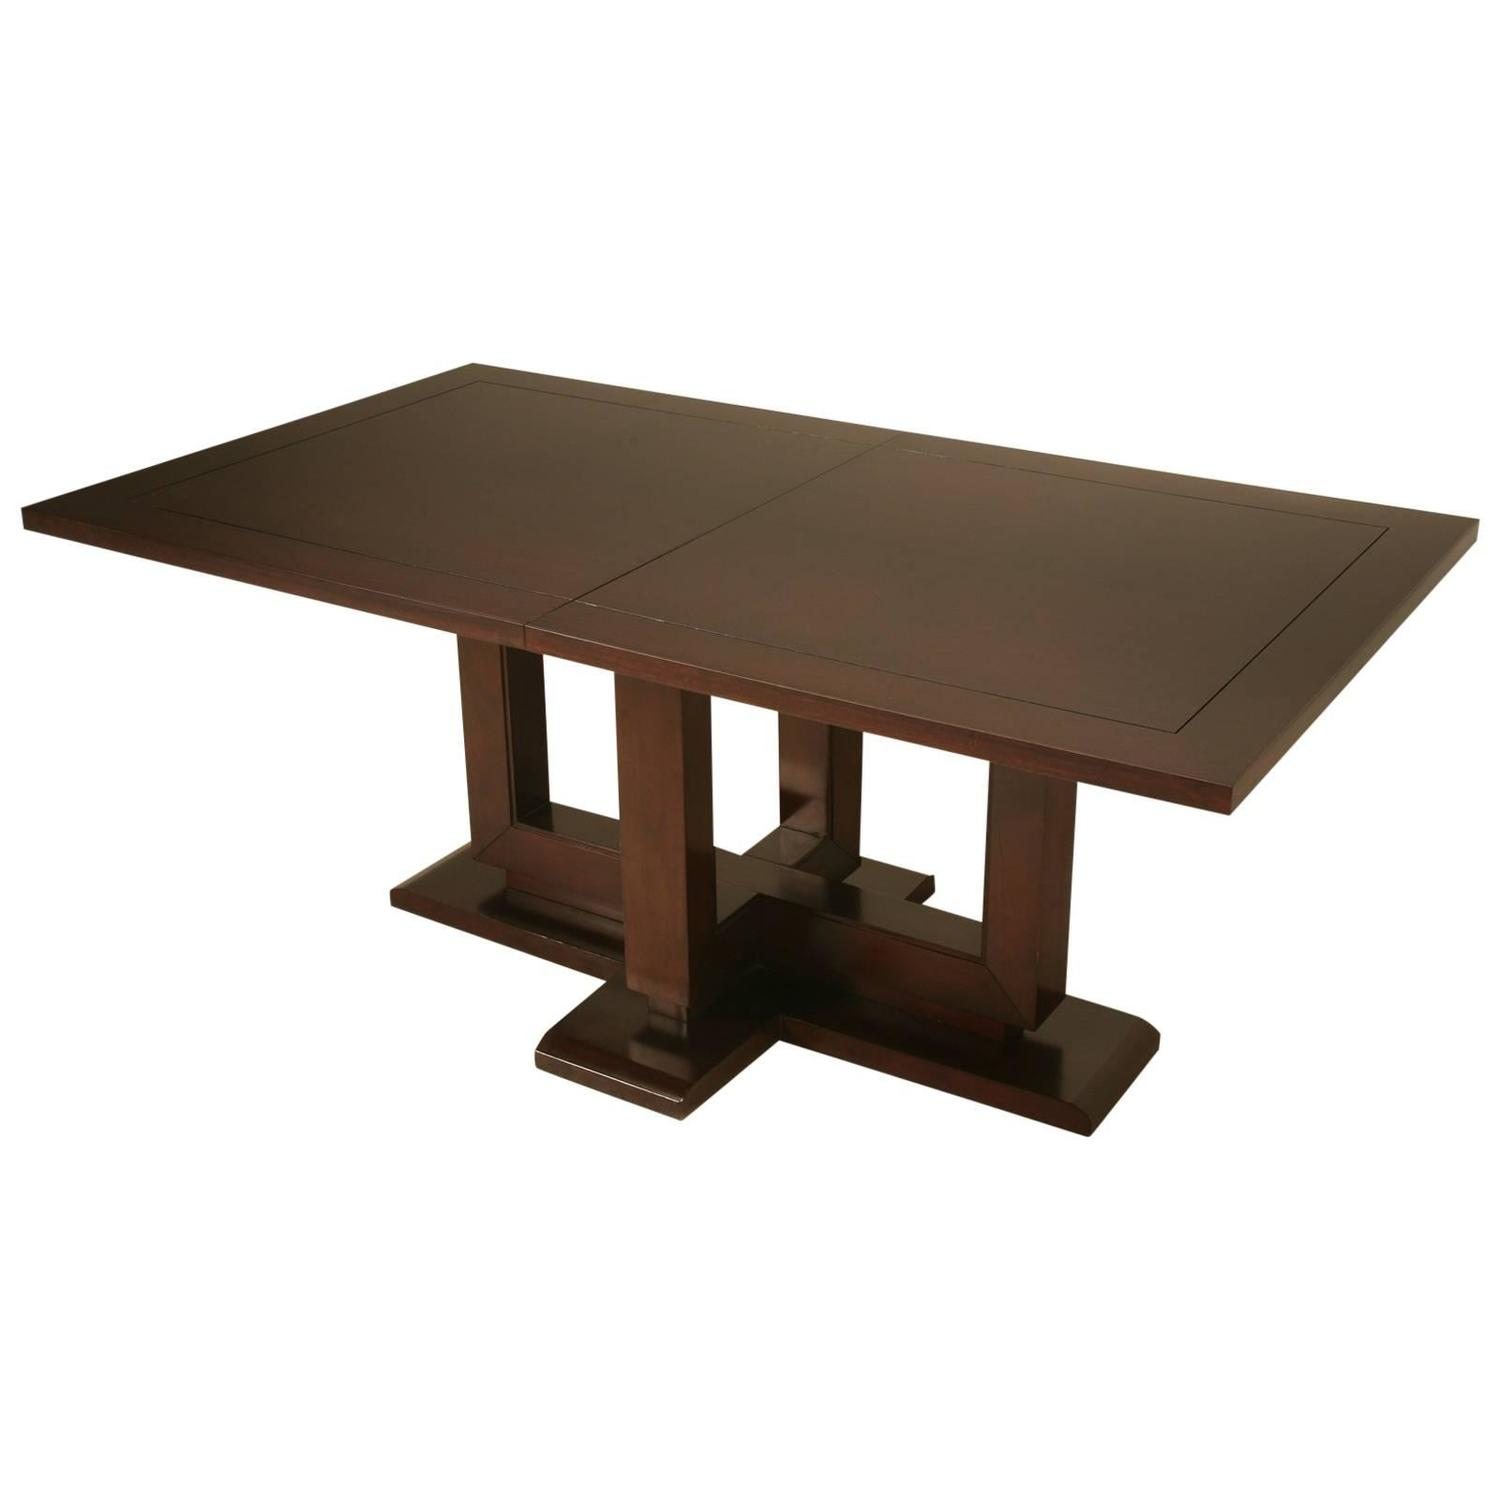 Modern dining table with large leaf for sale at 1stdibs for Large kitchen tables with leaves